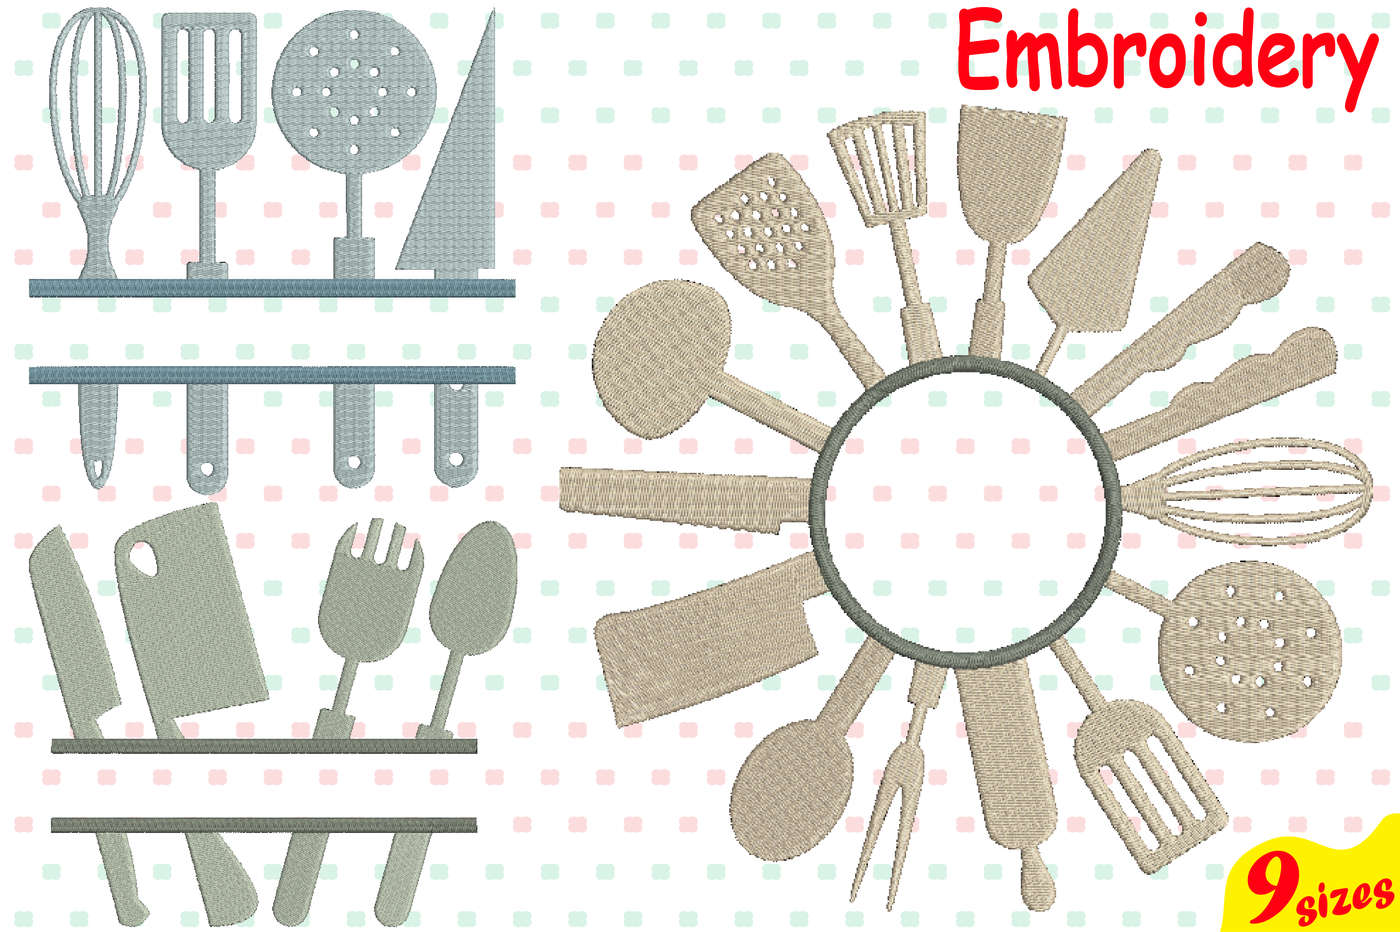 Kitchen Tools Designs For Embroidery Machine Instant Download